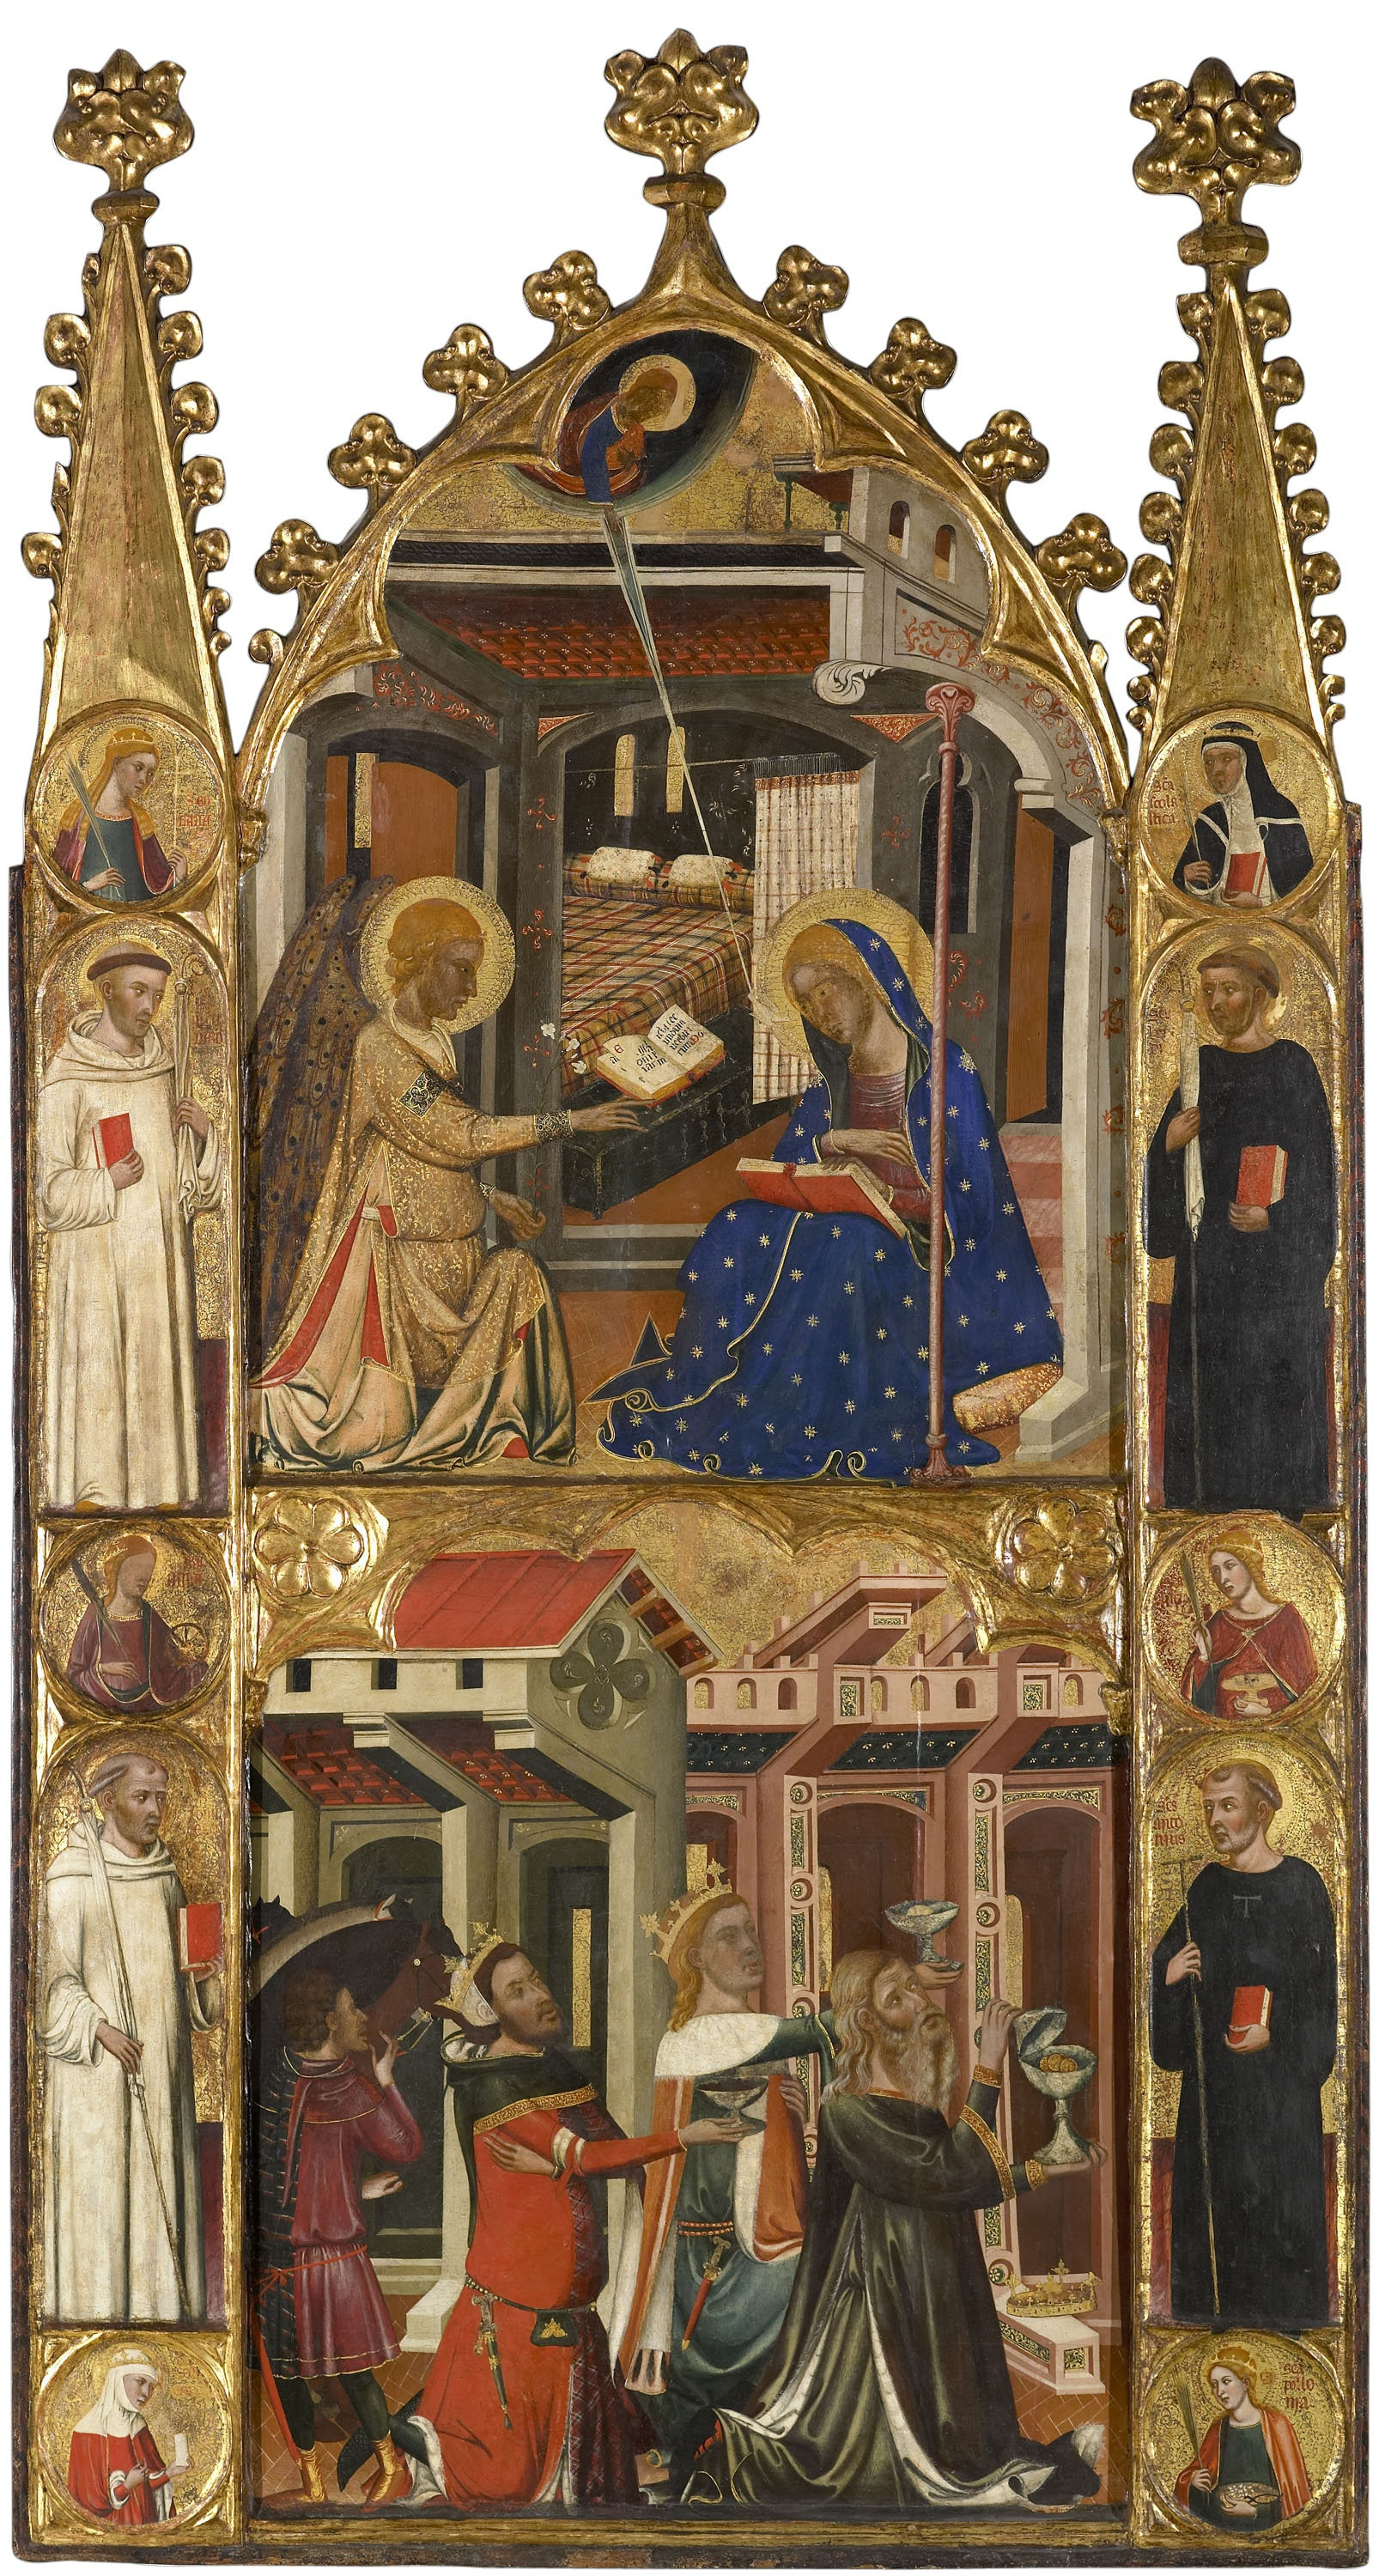 The Annunciation and the Three Kings at Epiphany